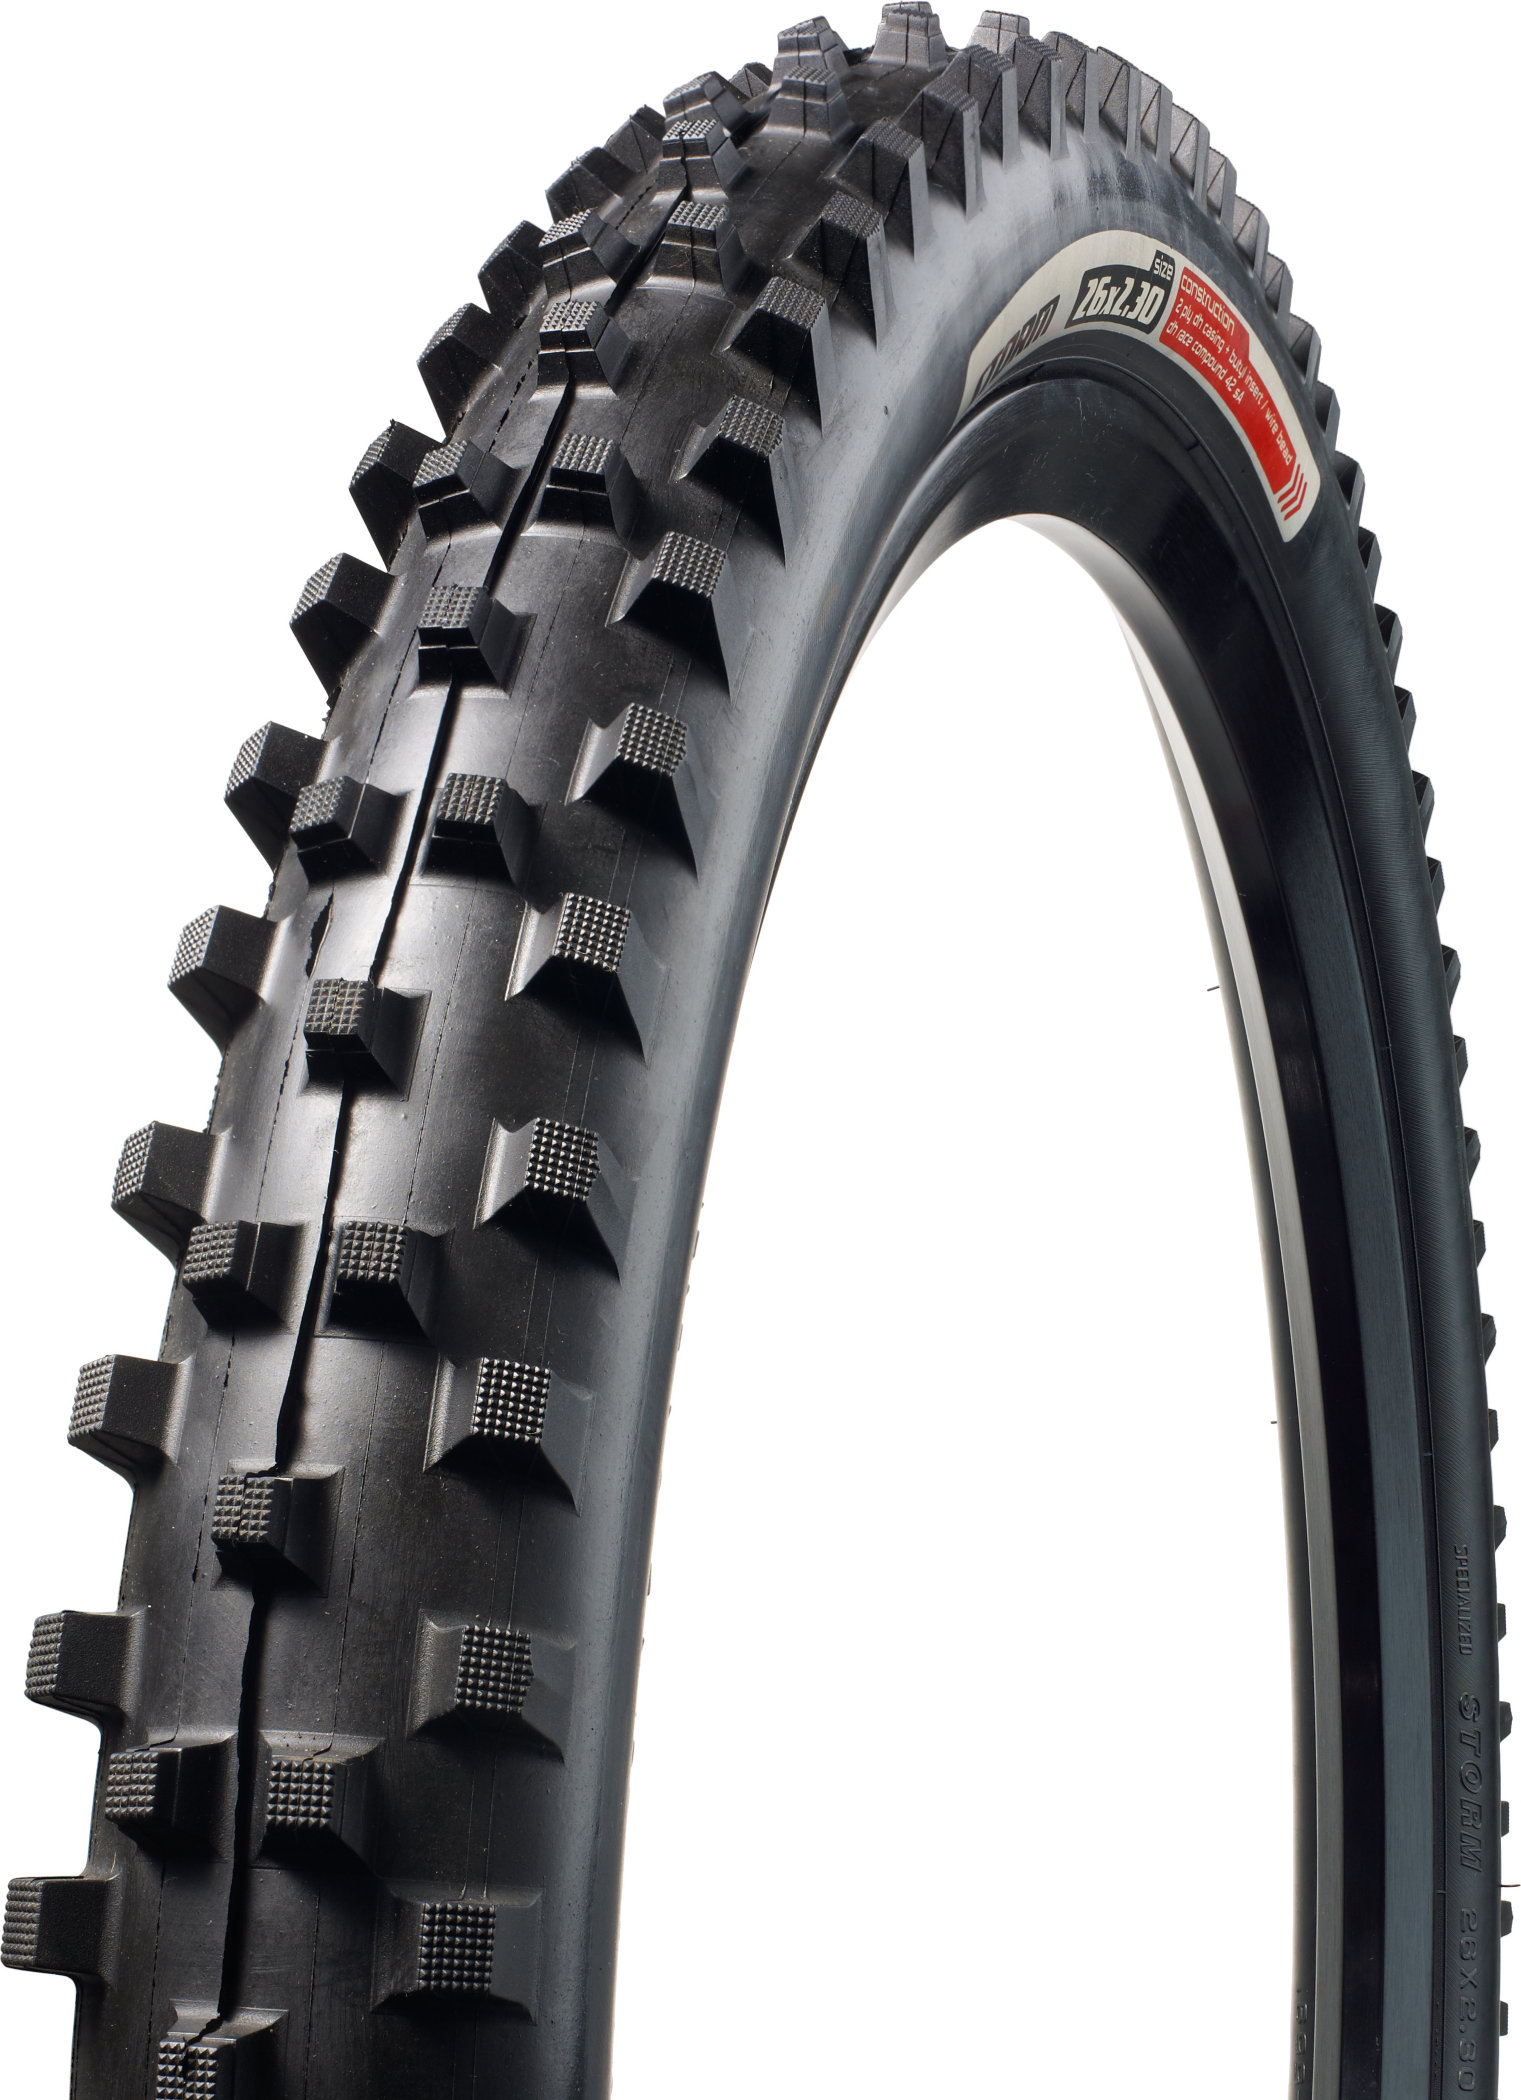 SPECIALIZED STORM DH TIRE 650BX2.3 - SPECIALIZED STORM DH TIRE 650BX2.3